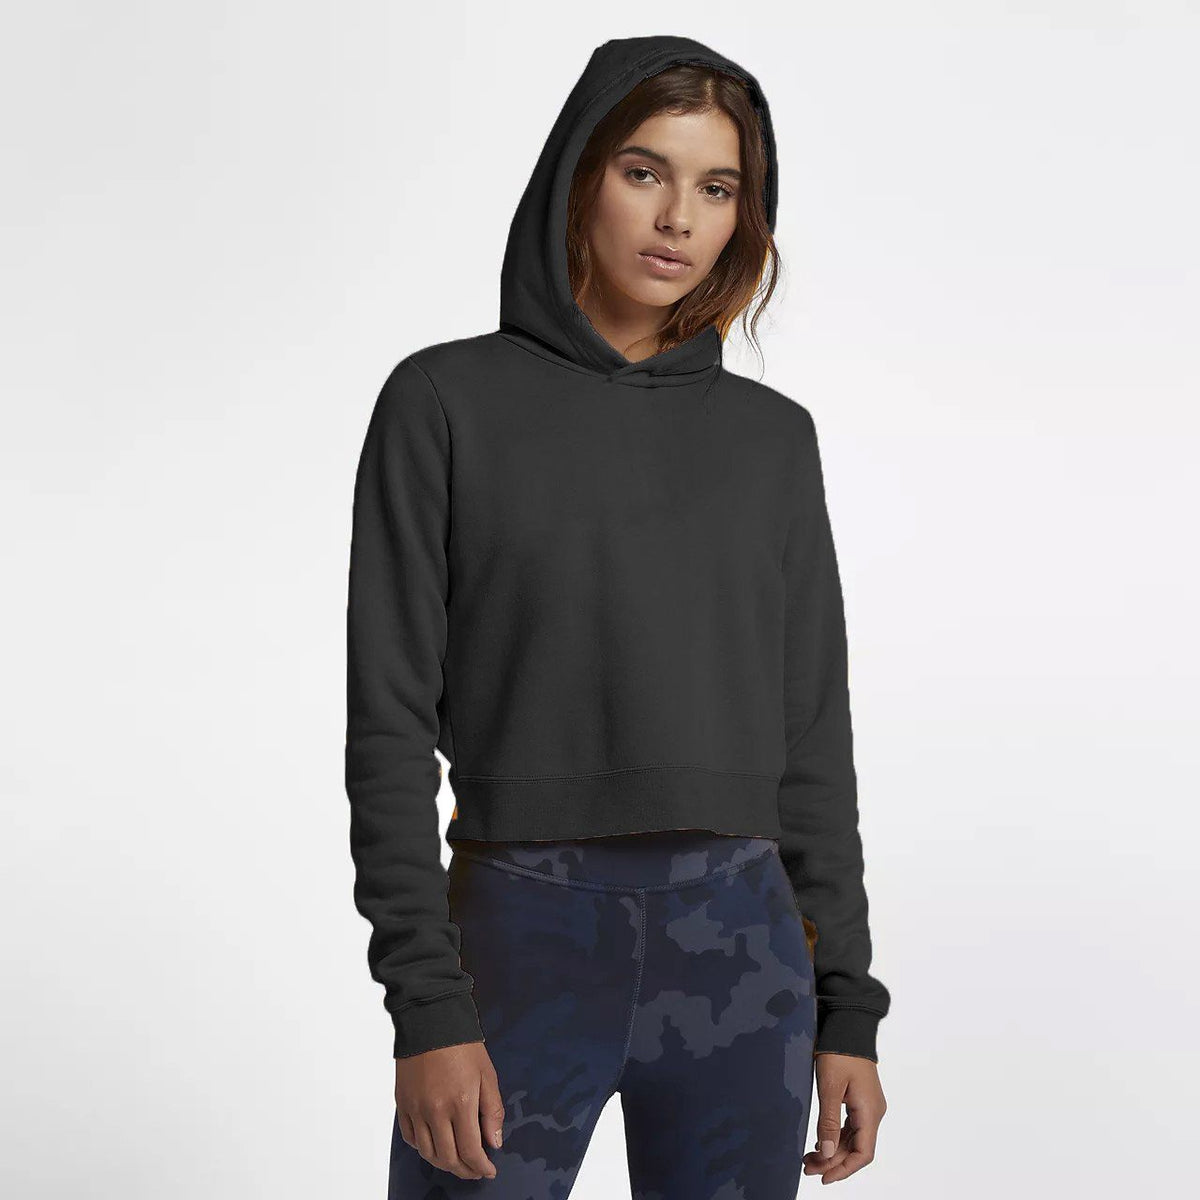 Tally Weijl Women's Minor Fault Fleece Cropped Hoodie Minor Fault SRK Black 2XS